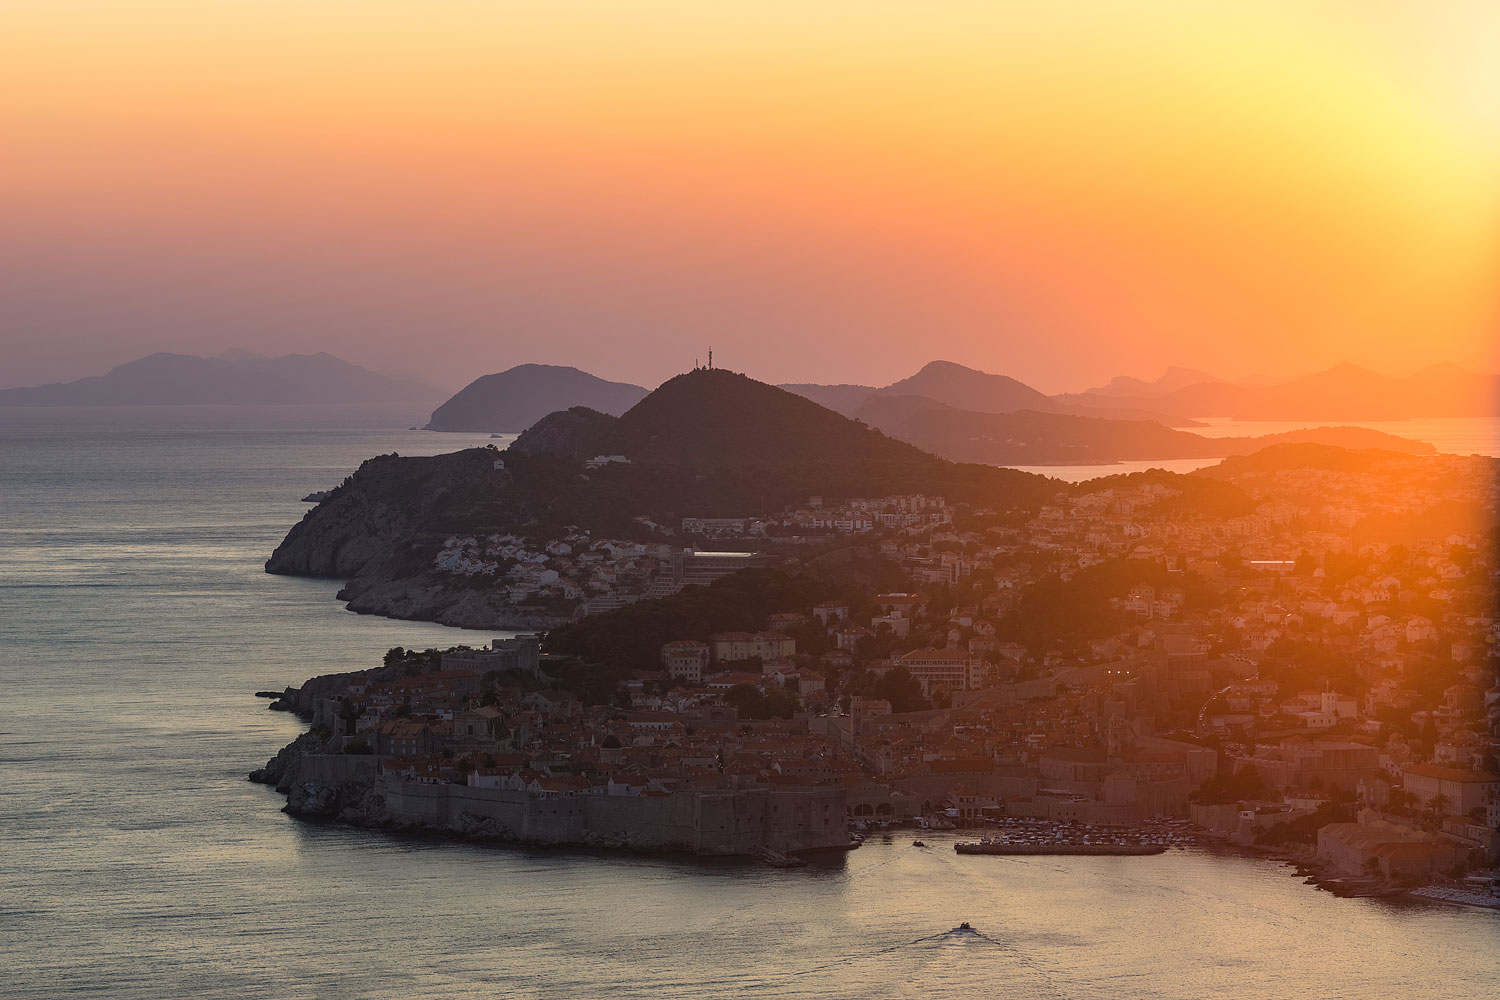 Elevated View of Dubrovnik at Sunset, Croatia.The walled city of Dubrovnik is a UNESCO World Heritage Site and one of Croatia's greatest tourist attractions.